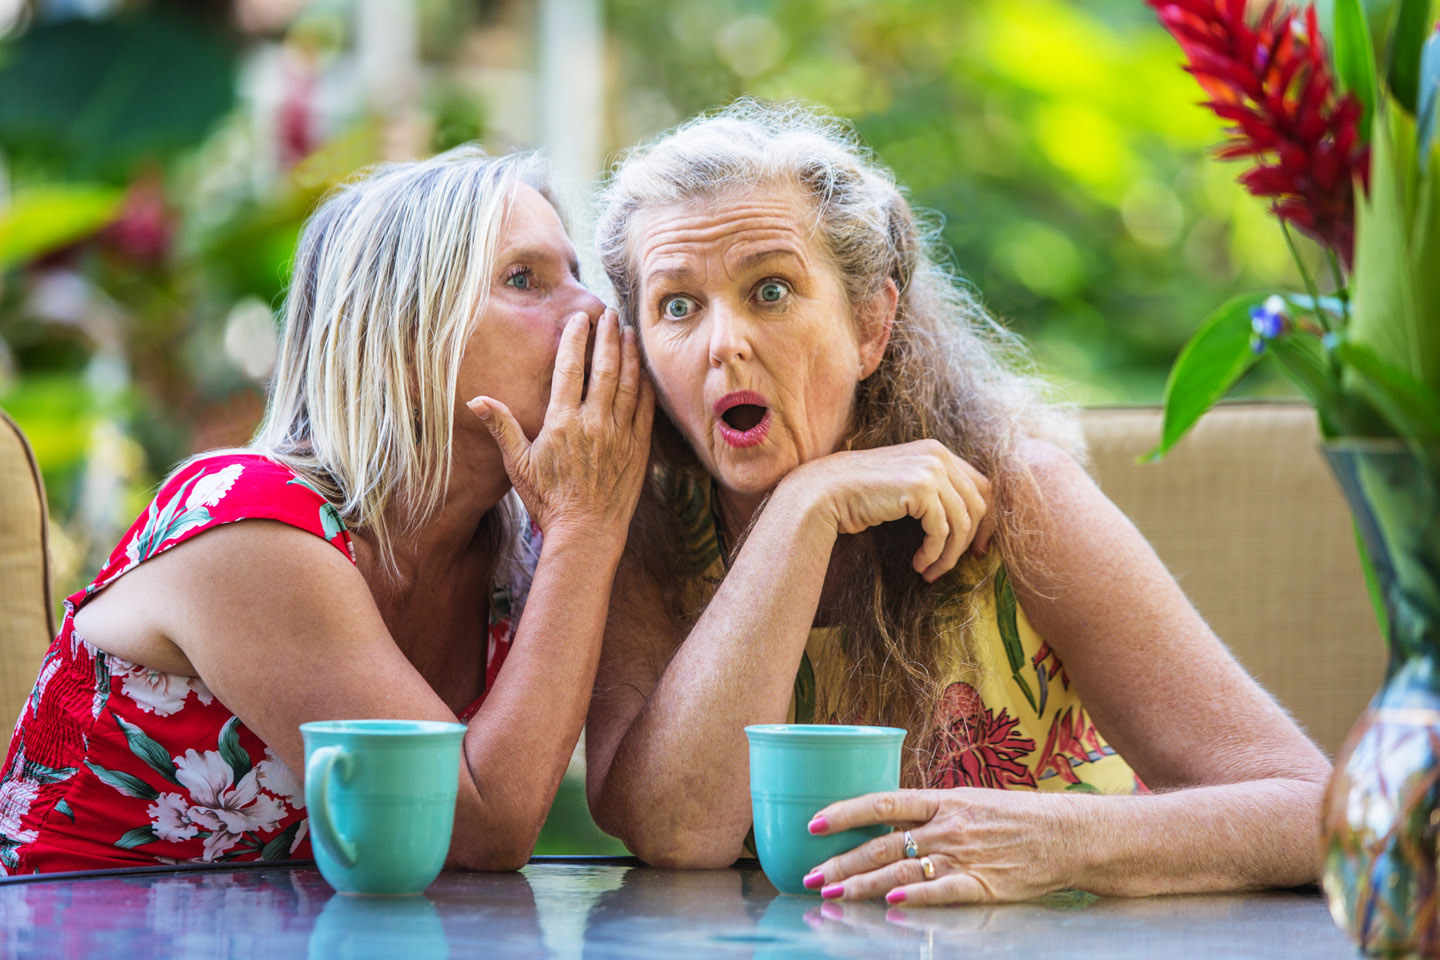 web-whisper-ear-old-women-table-shutterstock_300150470-creatista-ai